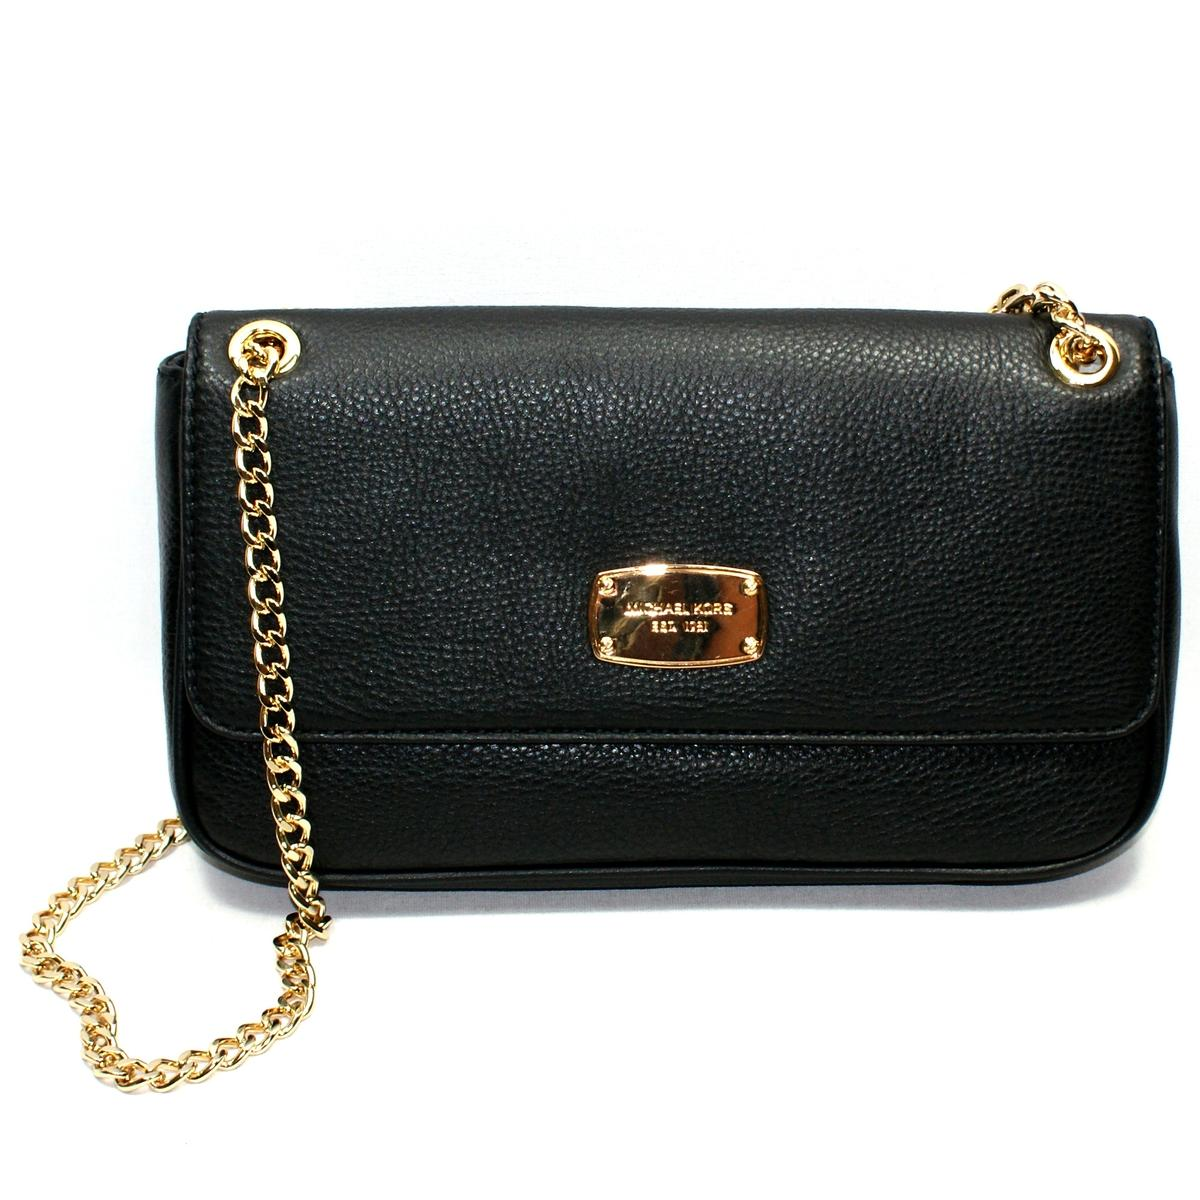 d8728d17f379 Home · Michael Kors · Jet Set Chain Genuine Leather Small Flap Shoulder Bag  Black. CLICK THUMBNAIL TO ZOOM. Found ...